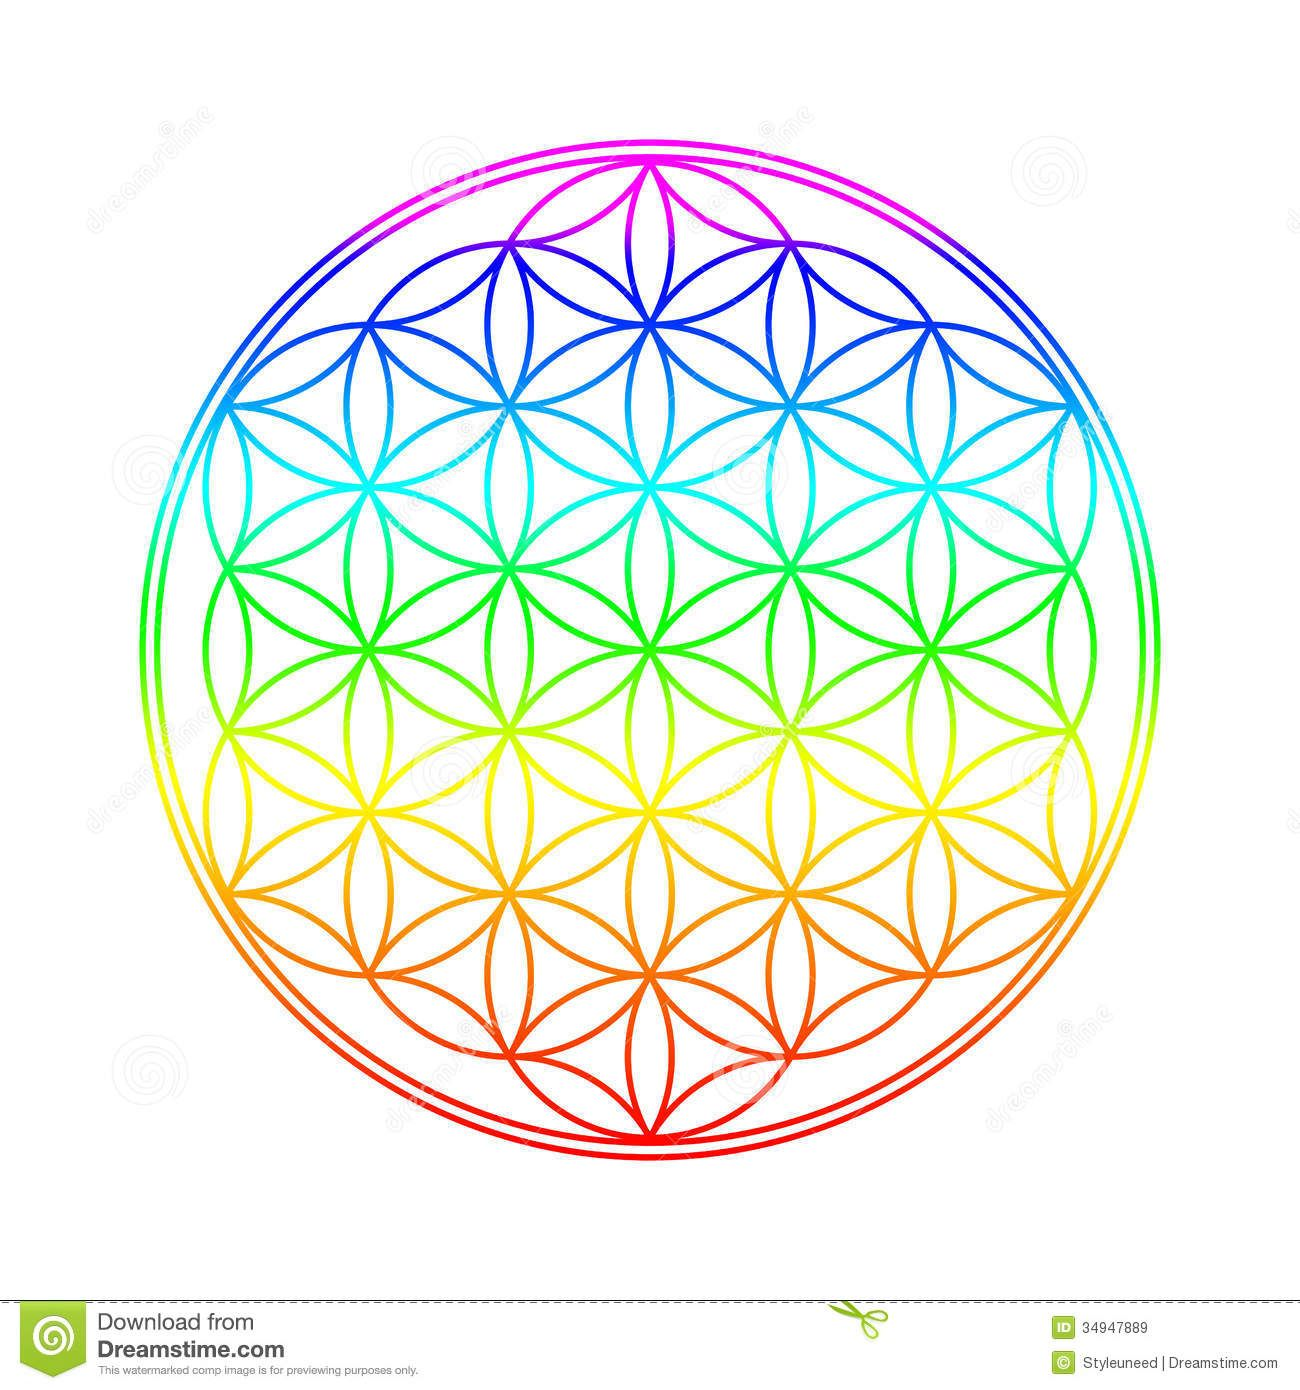 Flower Of Life - Download From Over 46 Million High ...